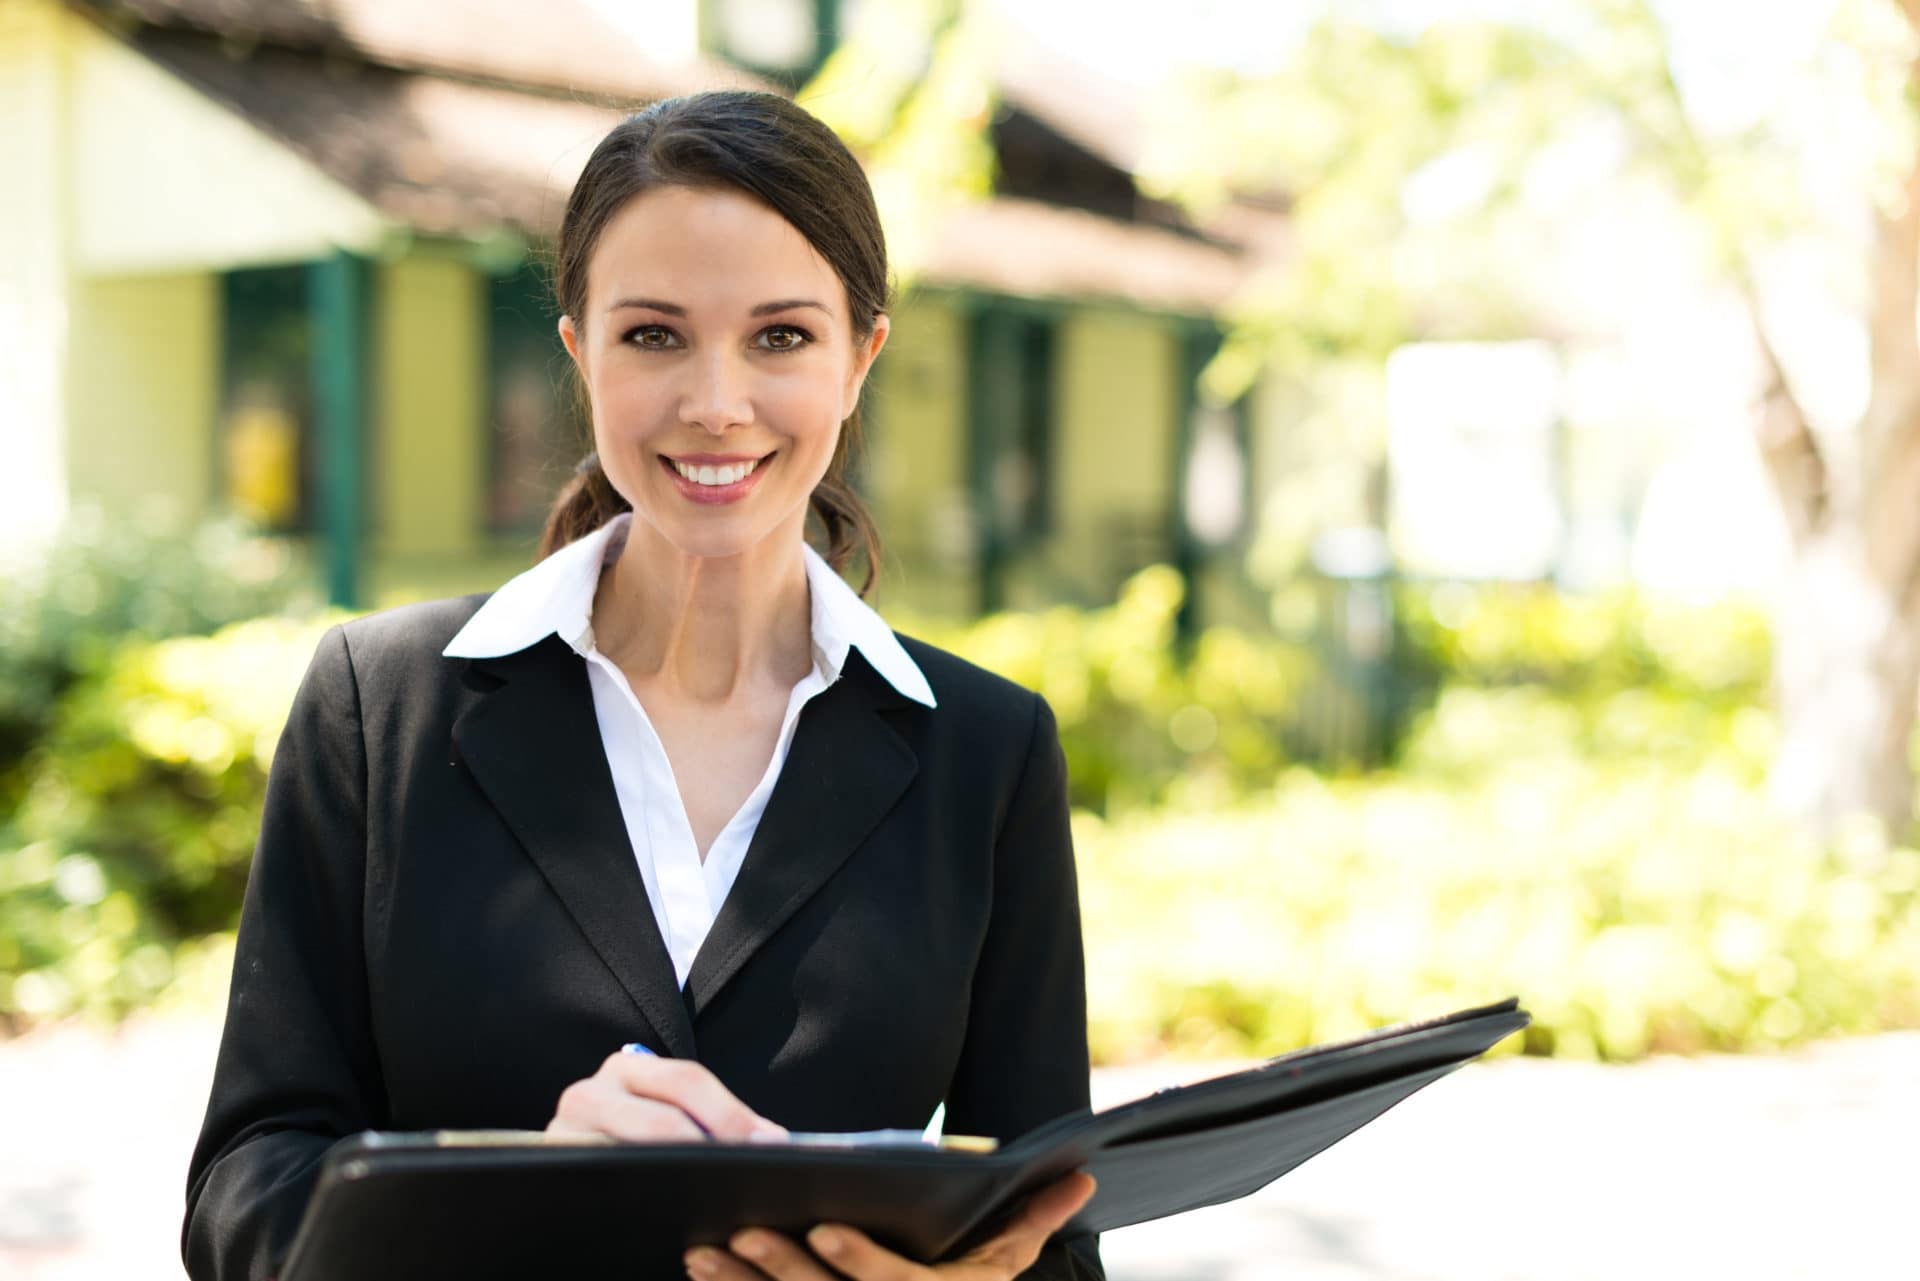 Hiring a Great Real Estate Agent in New York